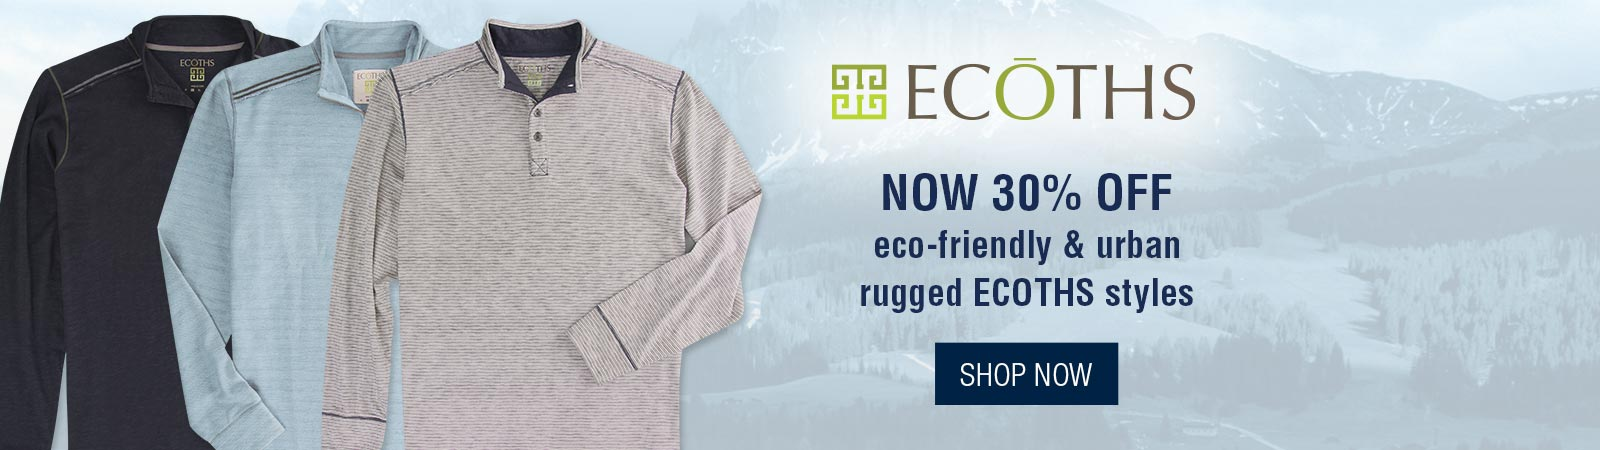 Ecoths Styles Now 30% Off